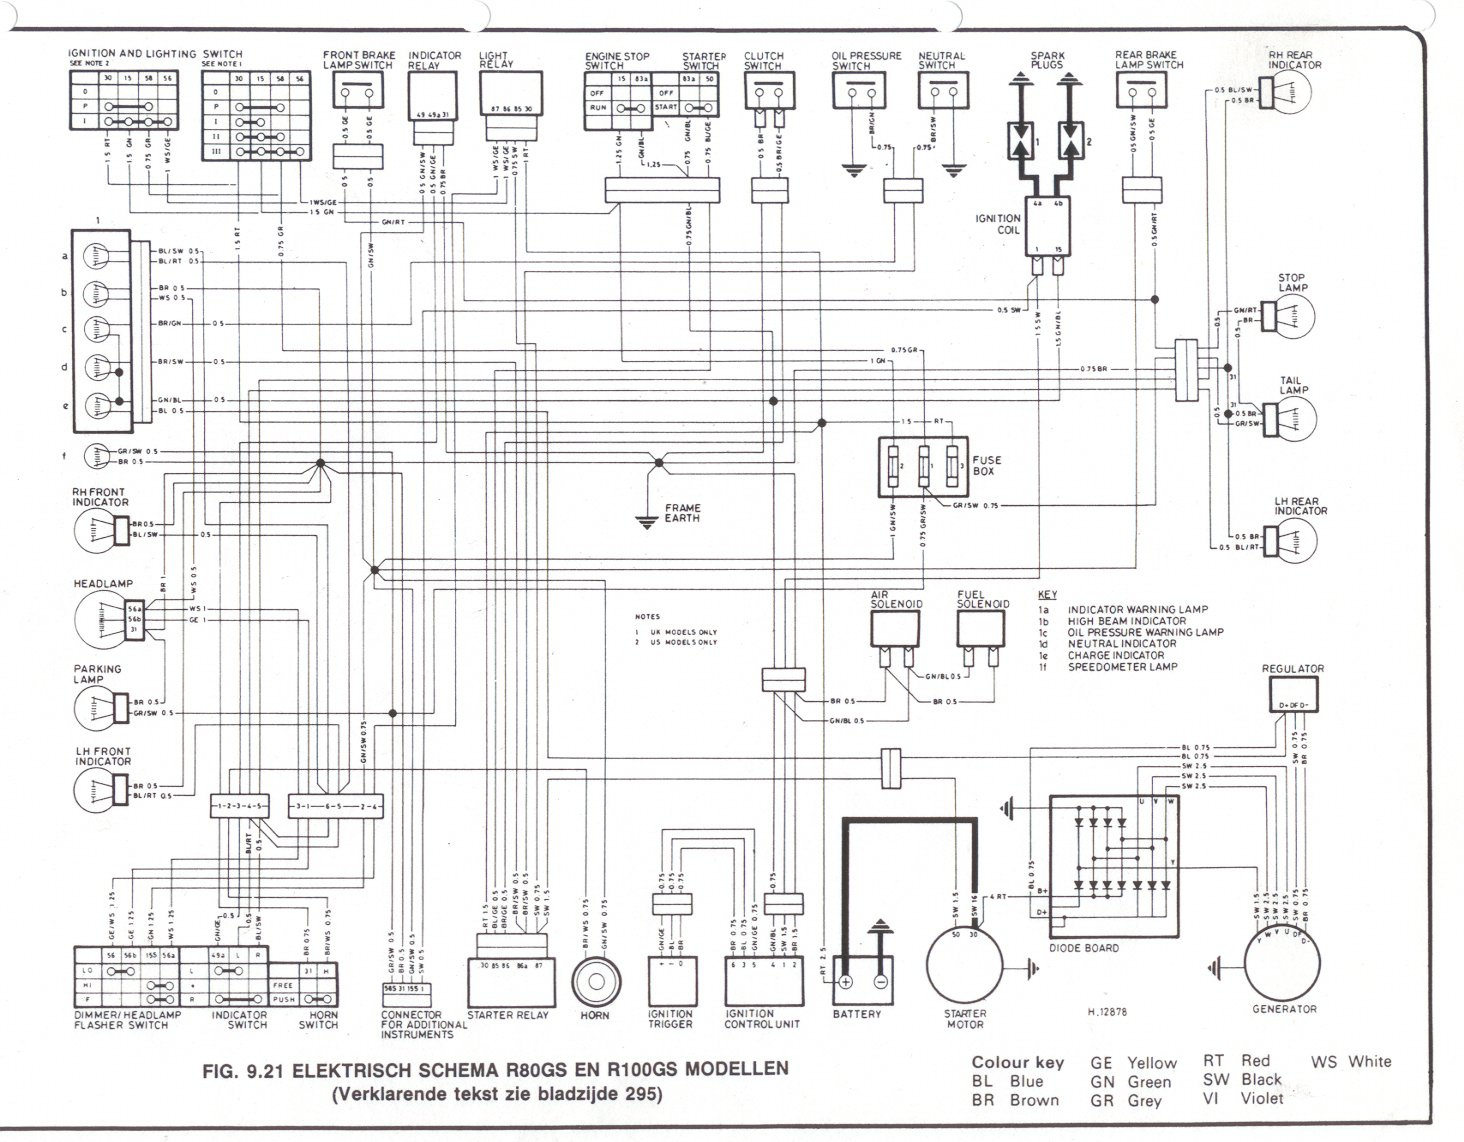 R80 100GS Schematic bmw r100 info thiel org za bmw r100rs gauge wiring diagram at edmiracle.co